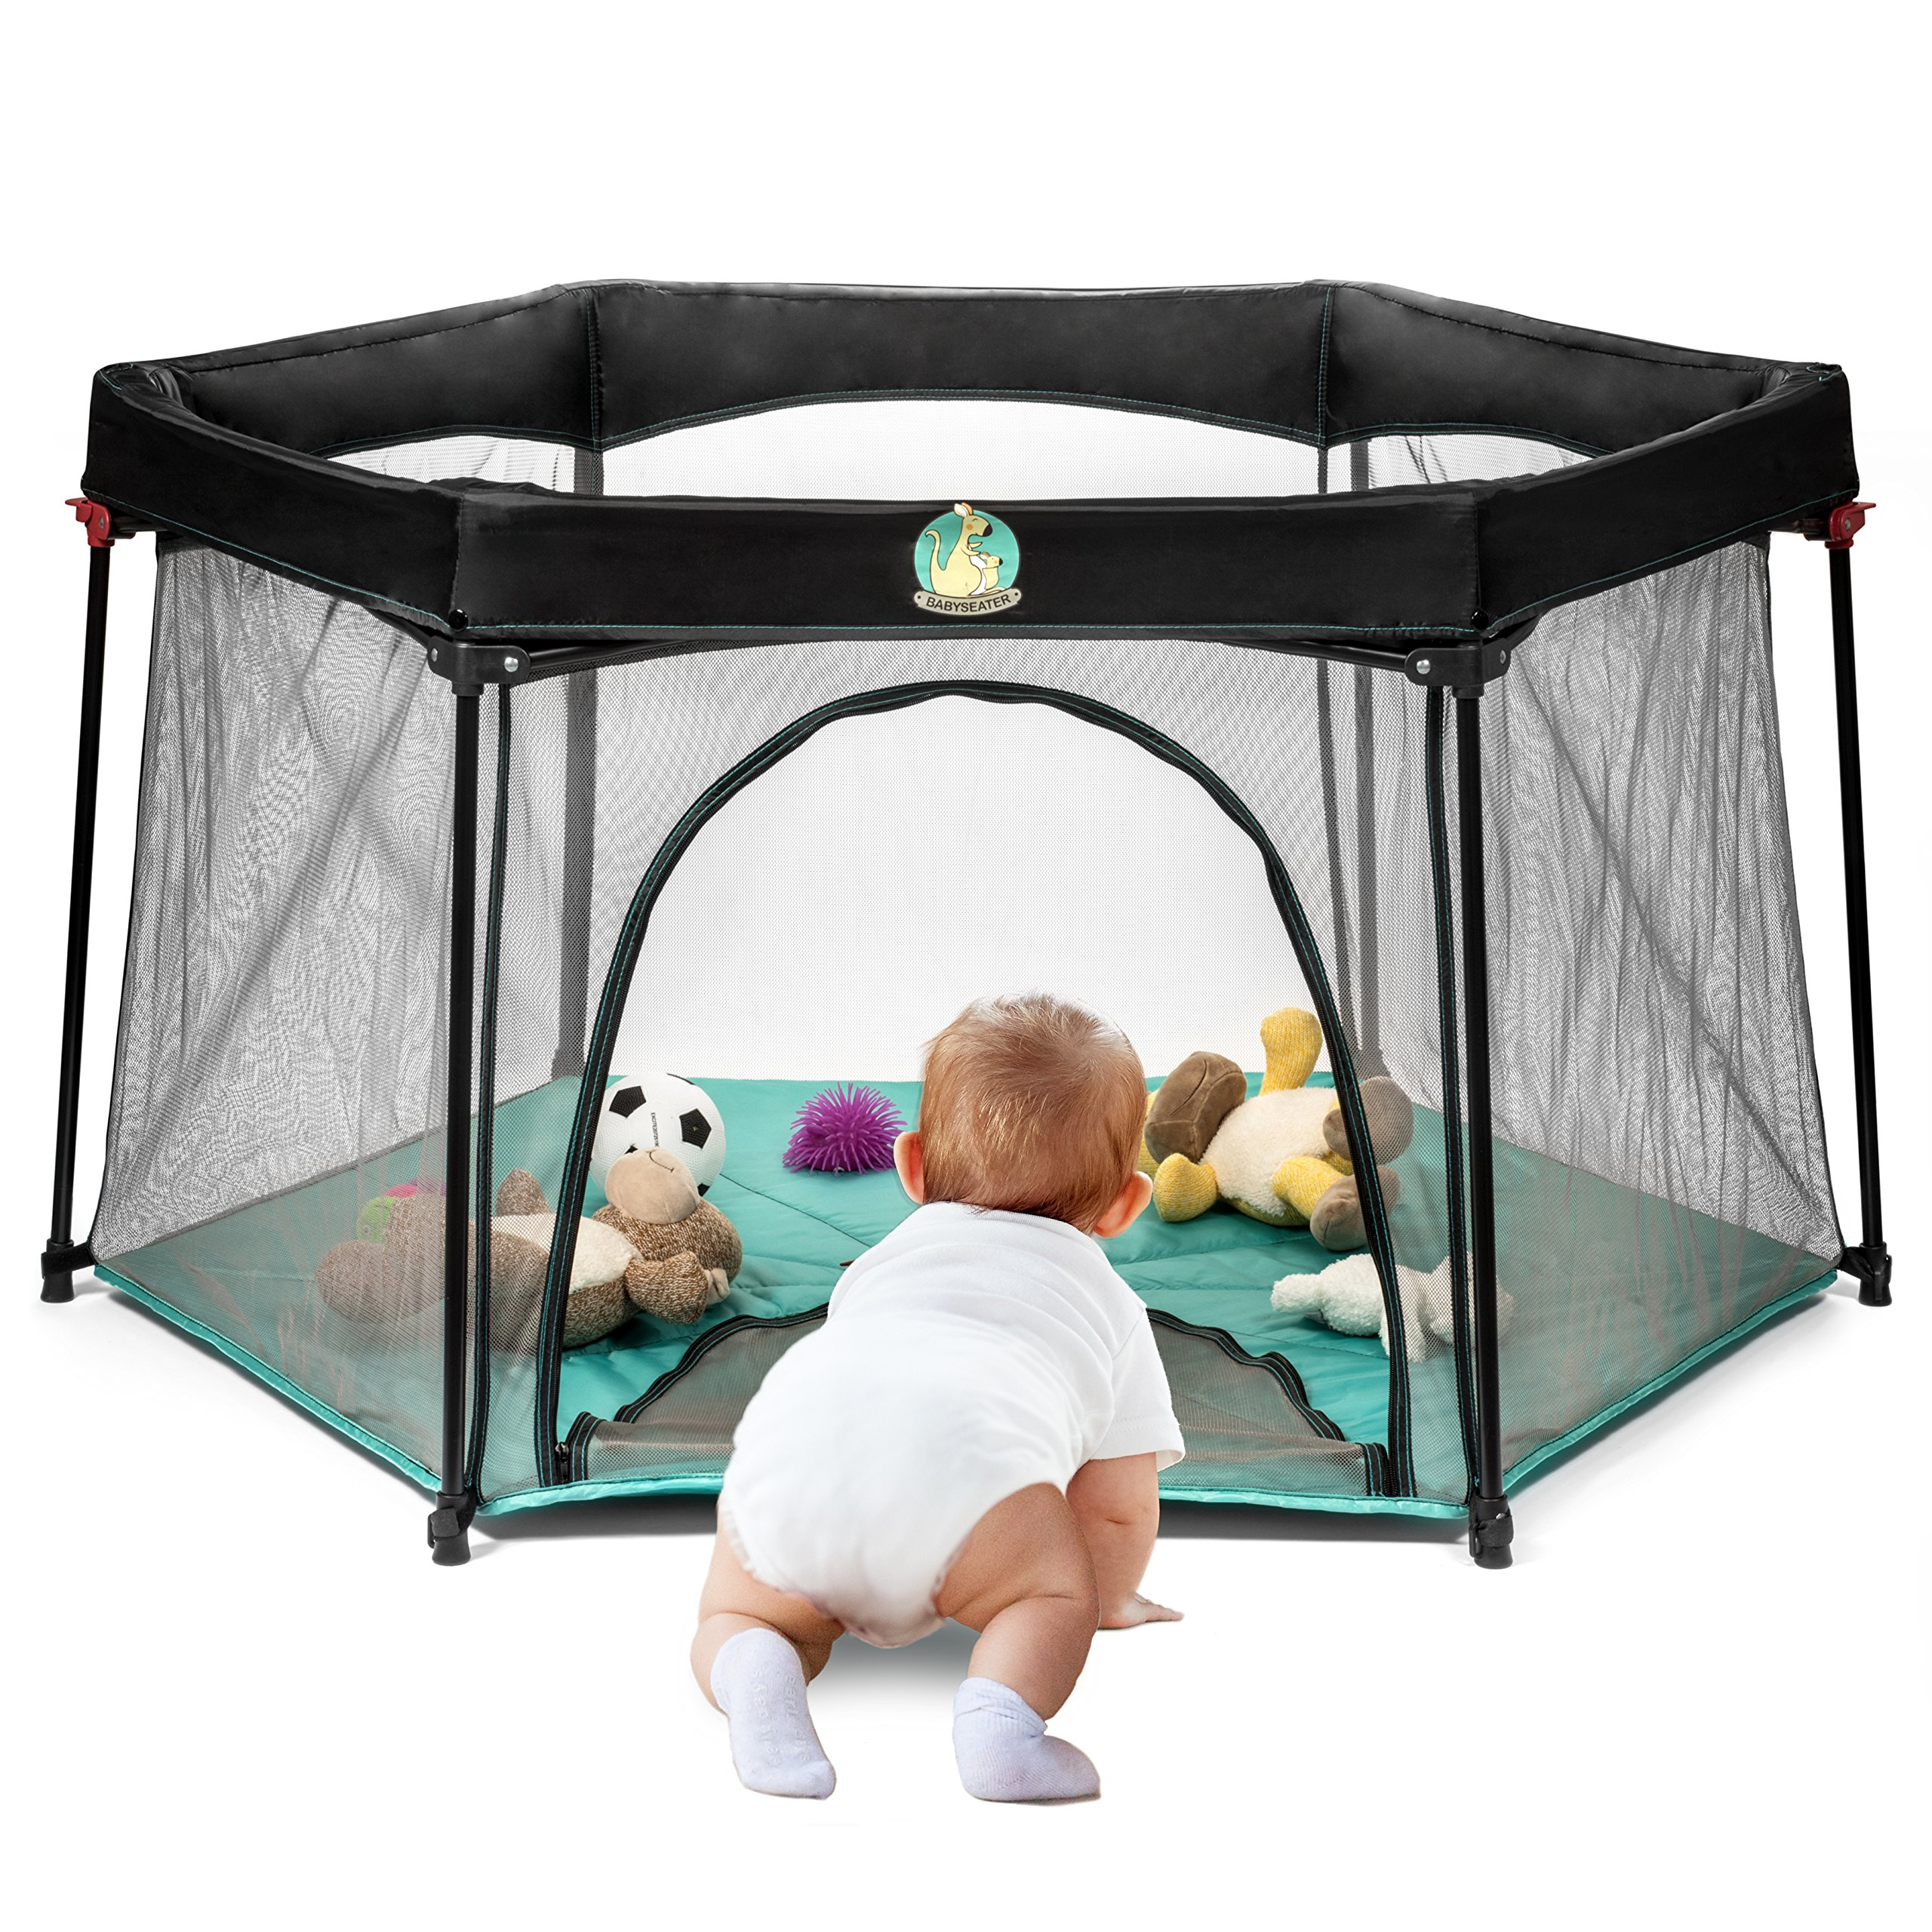 Infant Pack Nu0027 Play Portable Playard - Suitable for Indoor or Outdoor Use - Weather Resistant Canvas - Extra Playpen Handle Bag for Simple Storage ...  sc 1 st  eBay & Infant Pack Nu0027 Play Portable Playard - Suitable for Indoor or ...